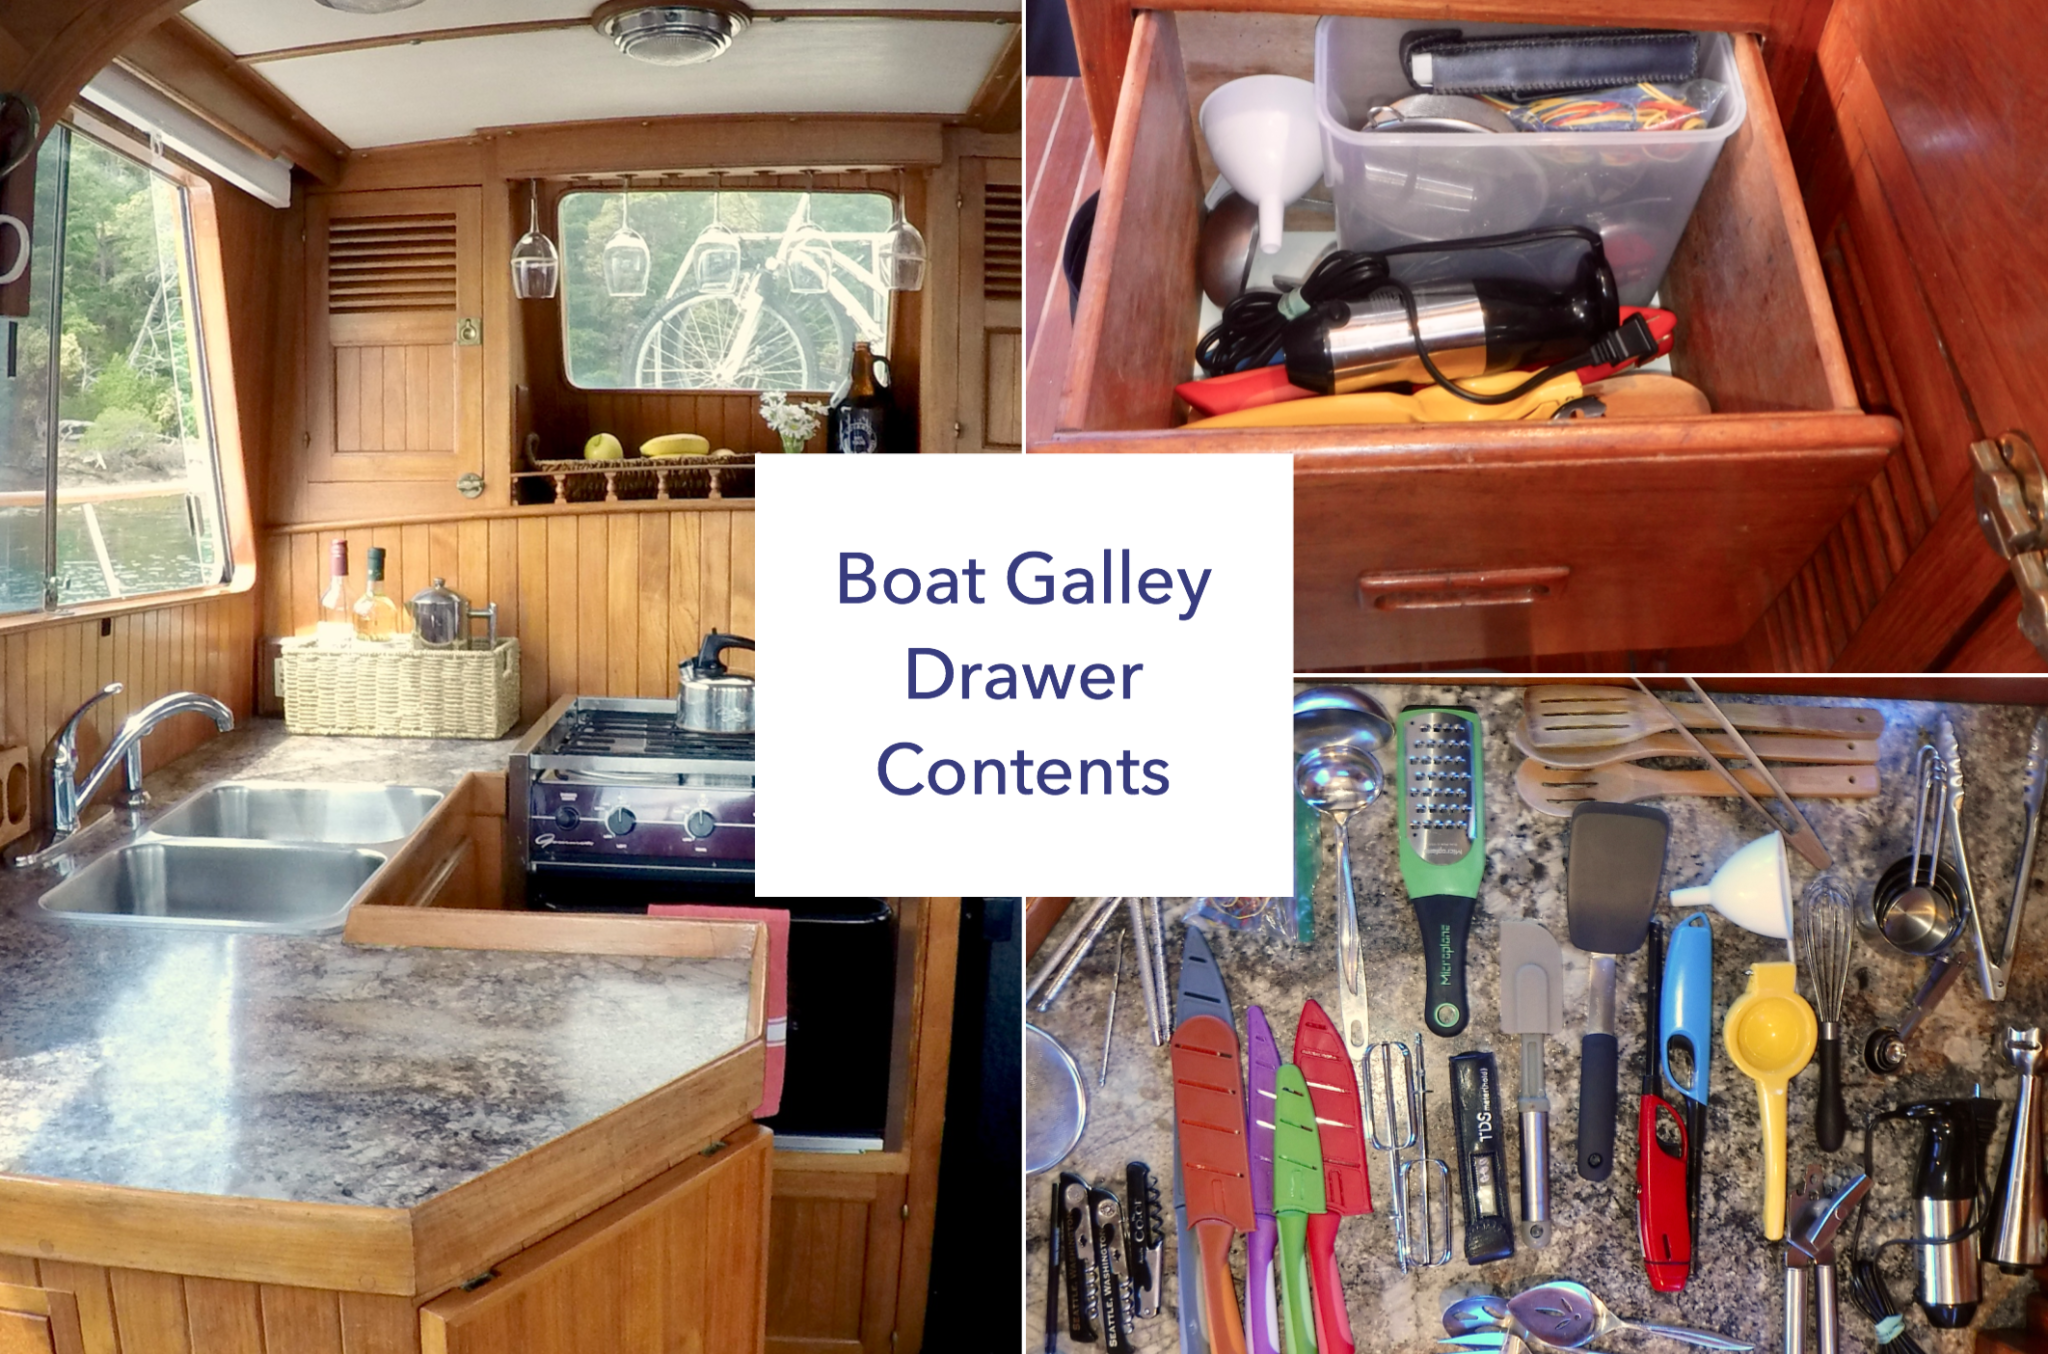 Kitchen Store In House The Boat Galley Drawer Organizationhow Do You Store Gear And